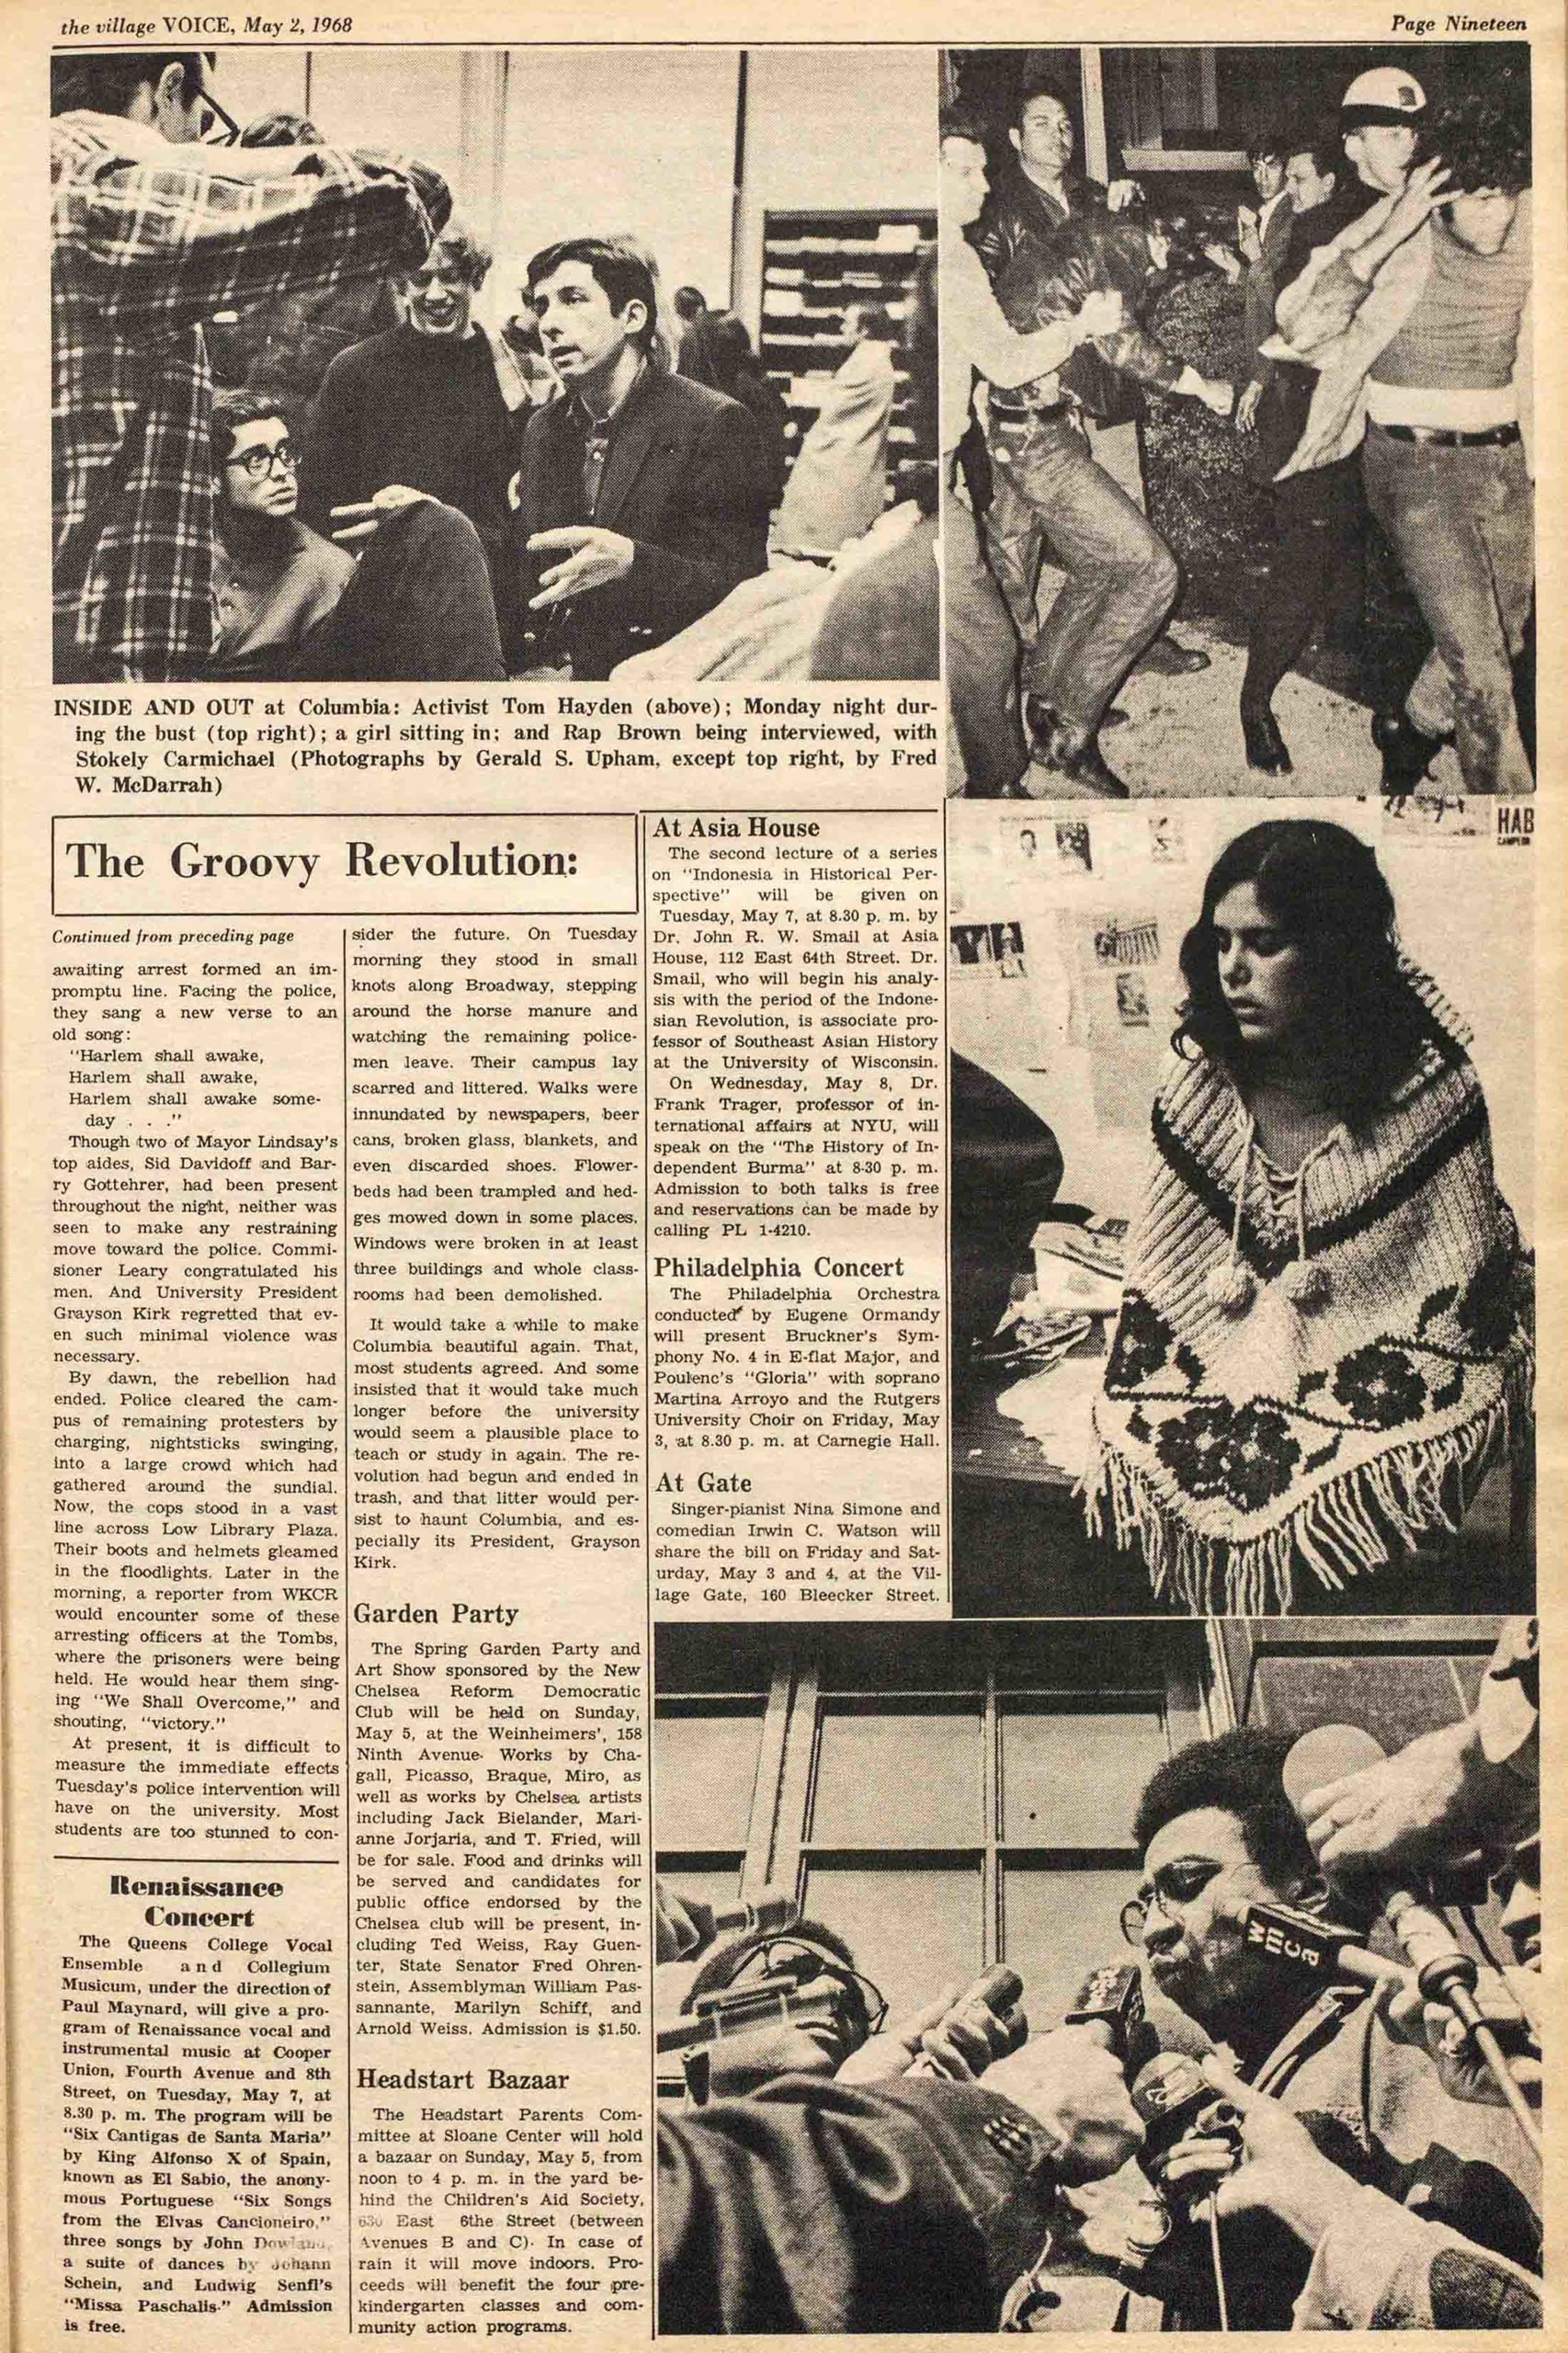 1968 Village Voice article by Richard Goldstein about the student revolt at Columbia University